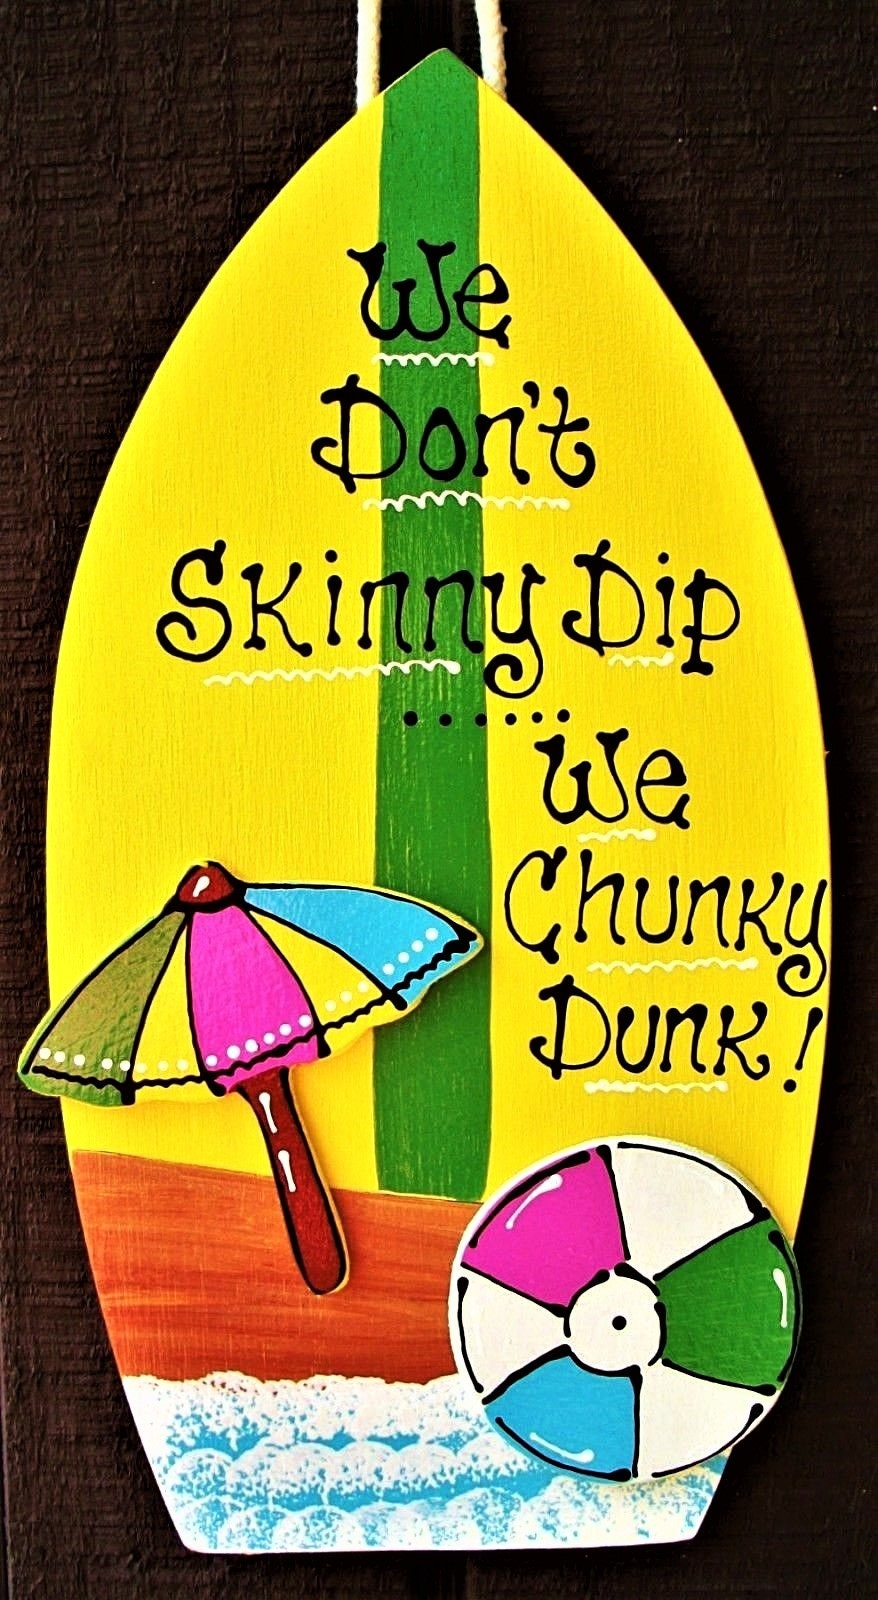 Skinny Dip Chunky Dunk Surfboard POOL SIGN Deck Tiki Bar Hot